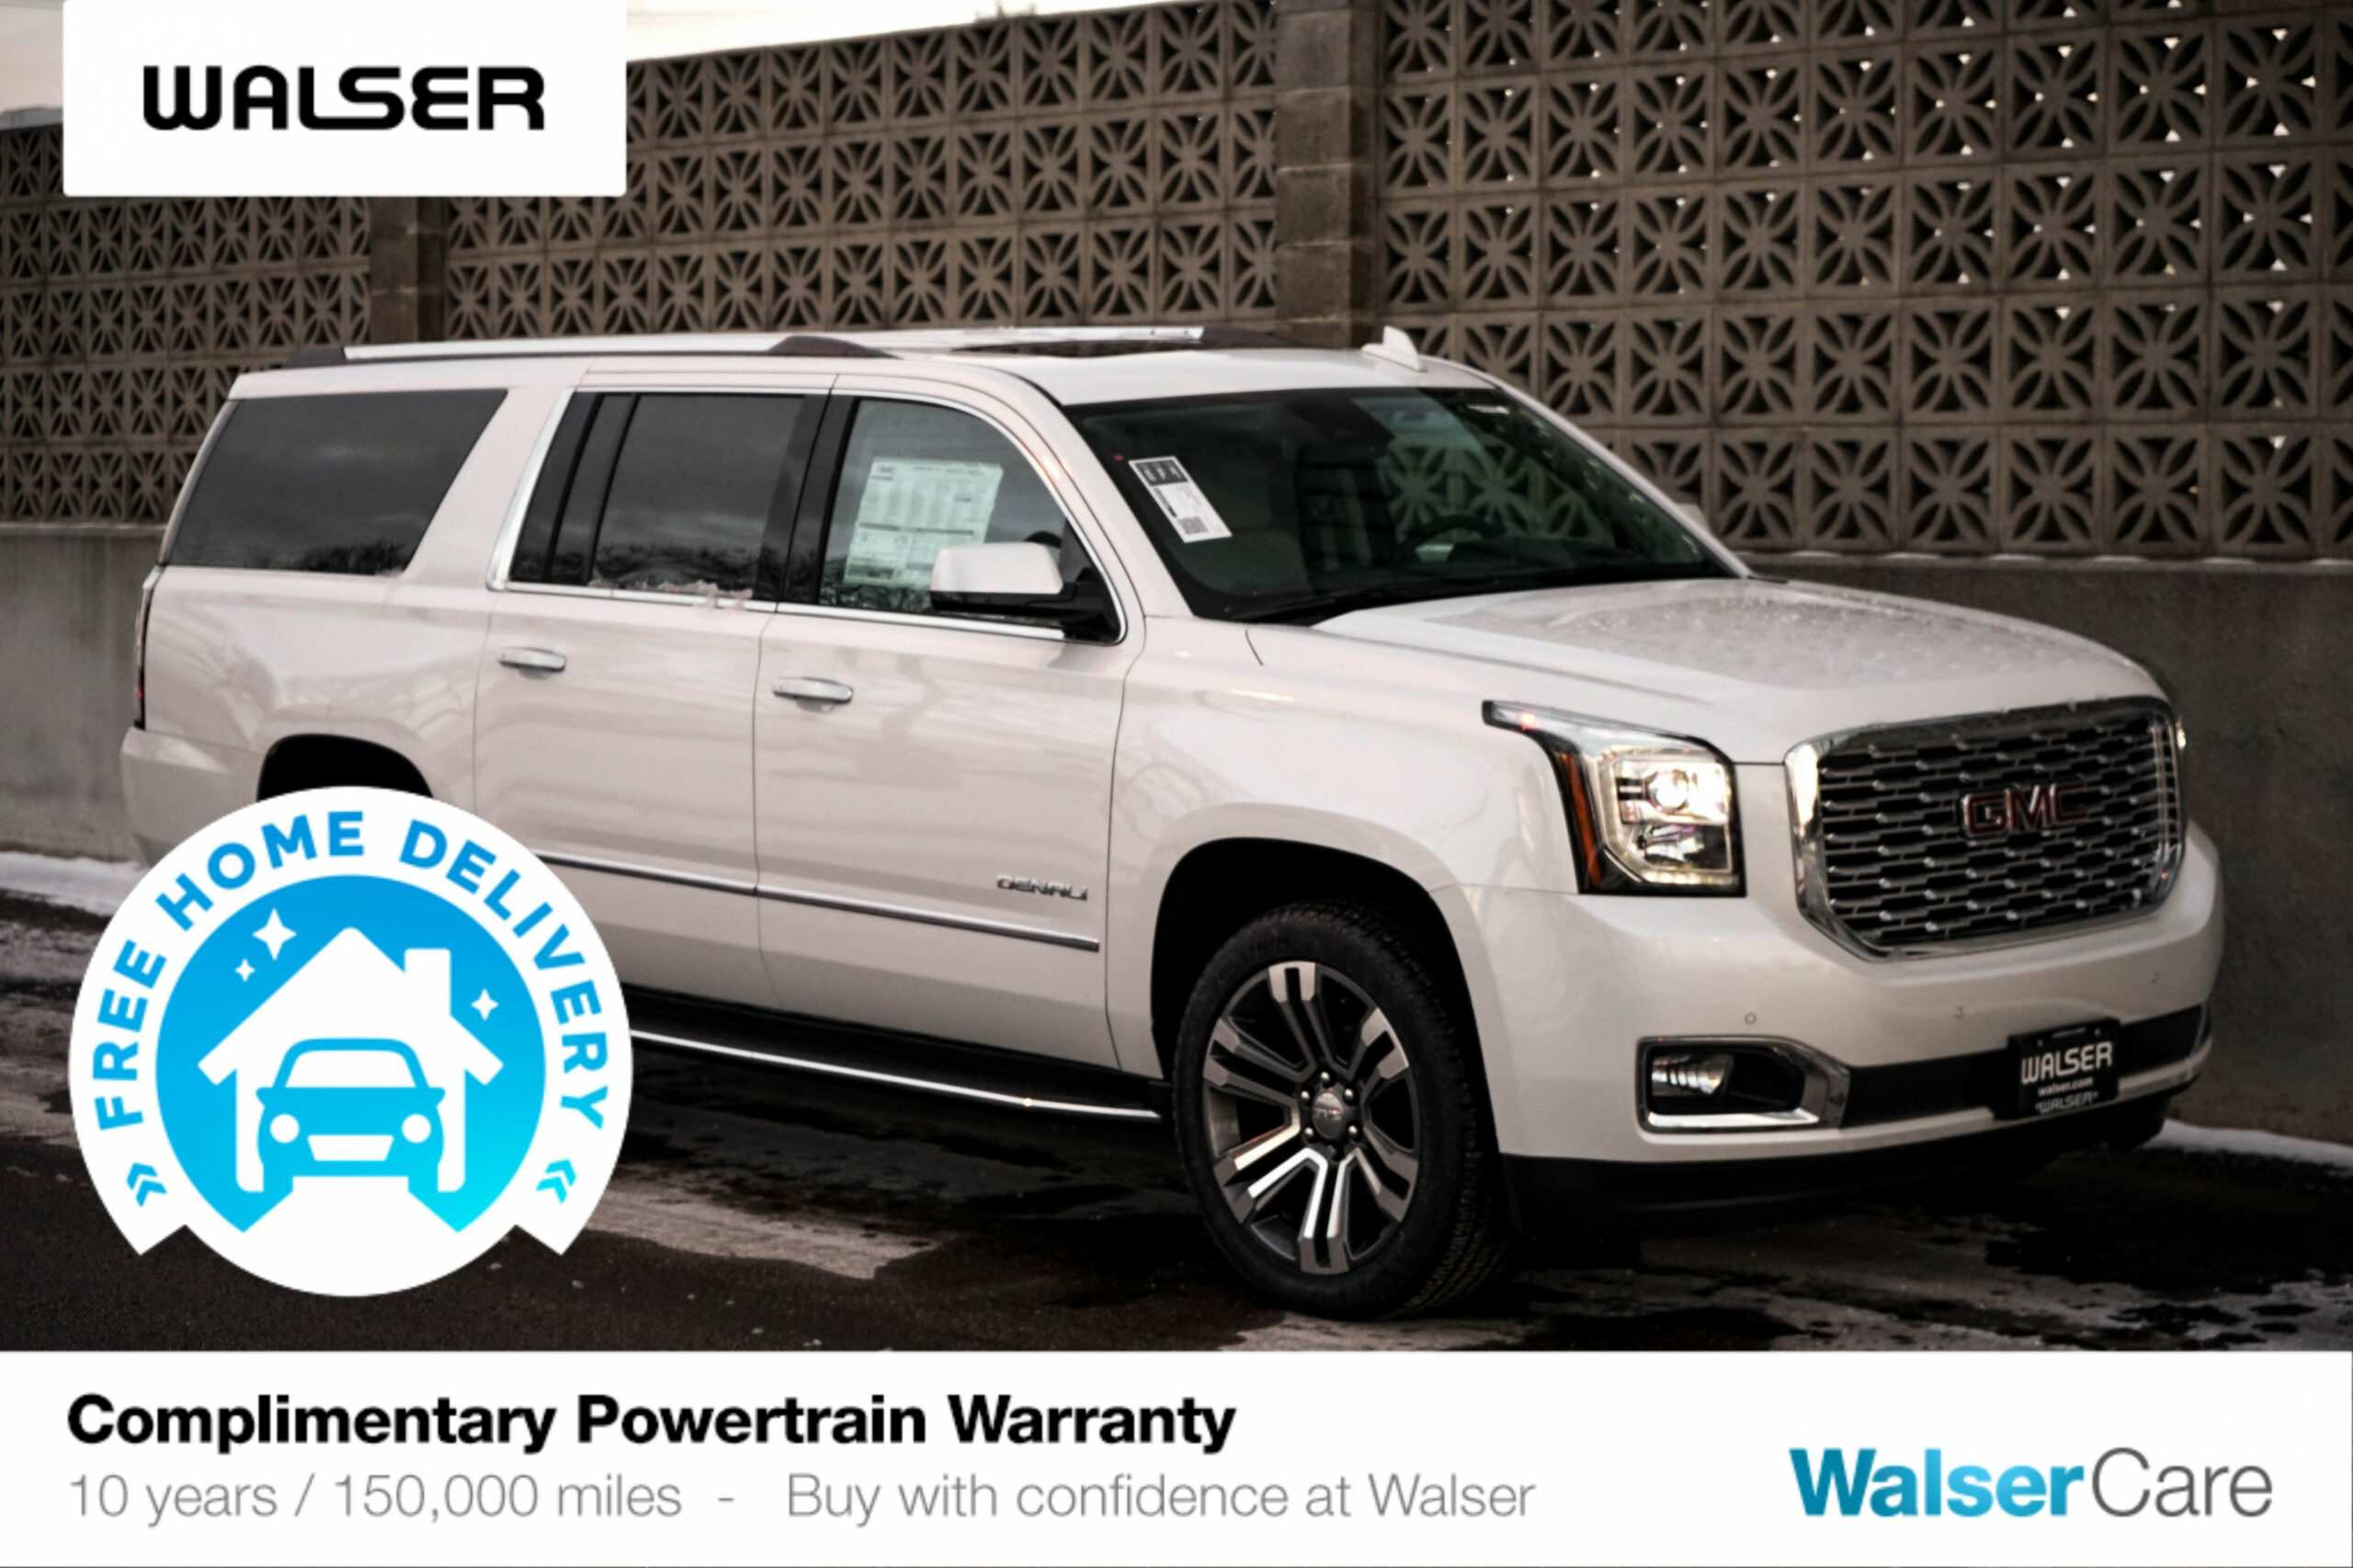 New 8 GMC Yukon XL Denali With Navigation & 8WD - 2020 gmc yukon xl denali for sale